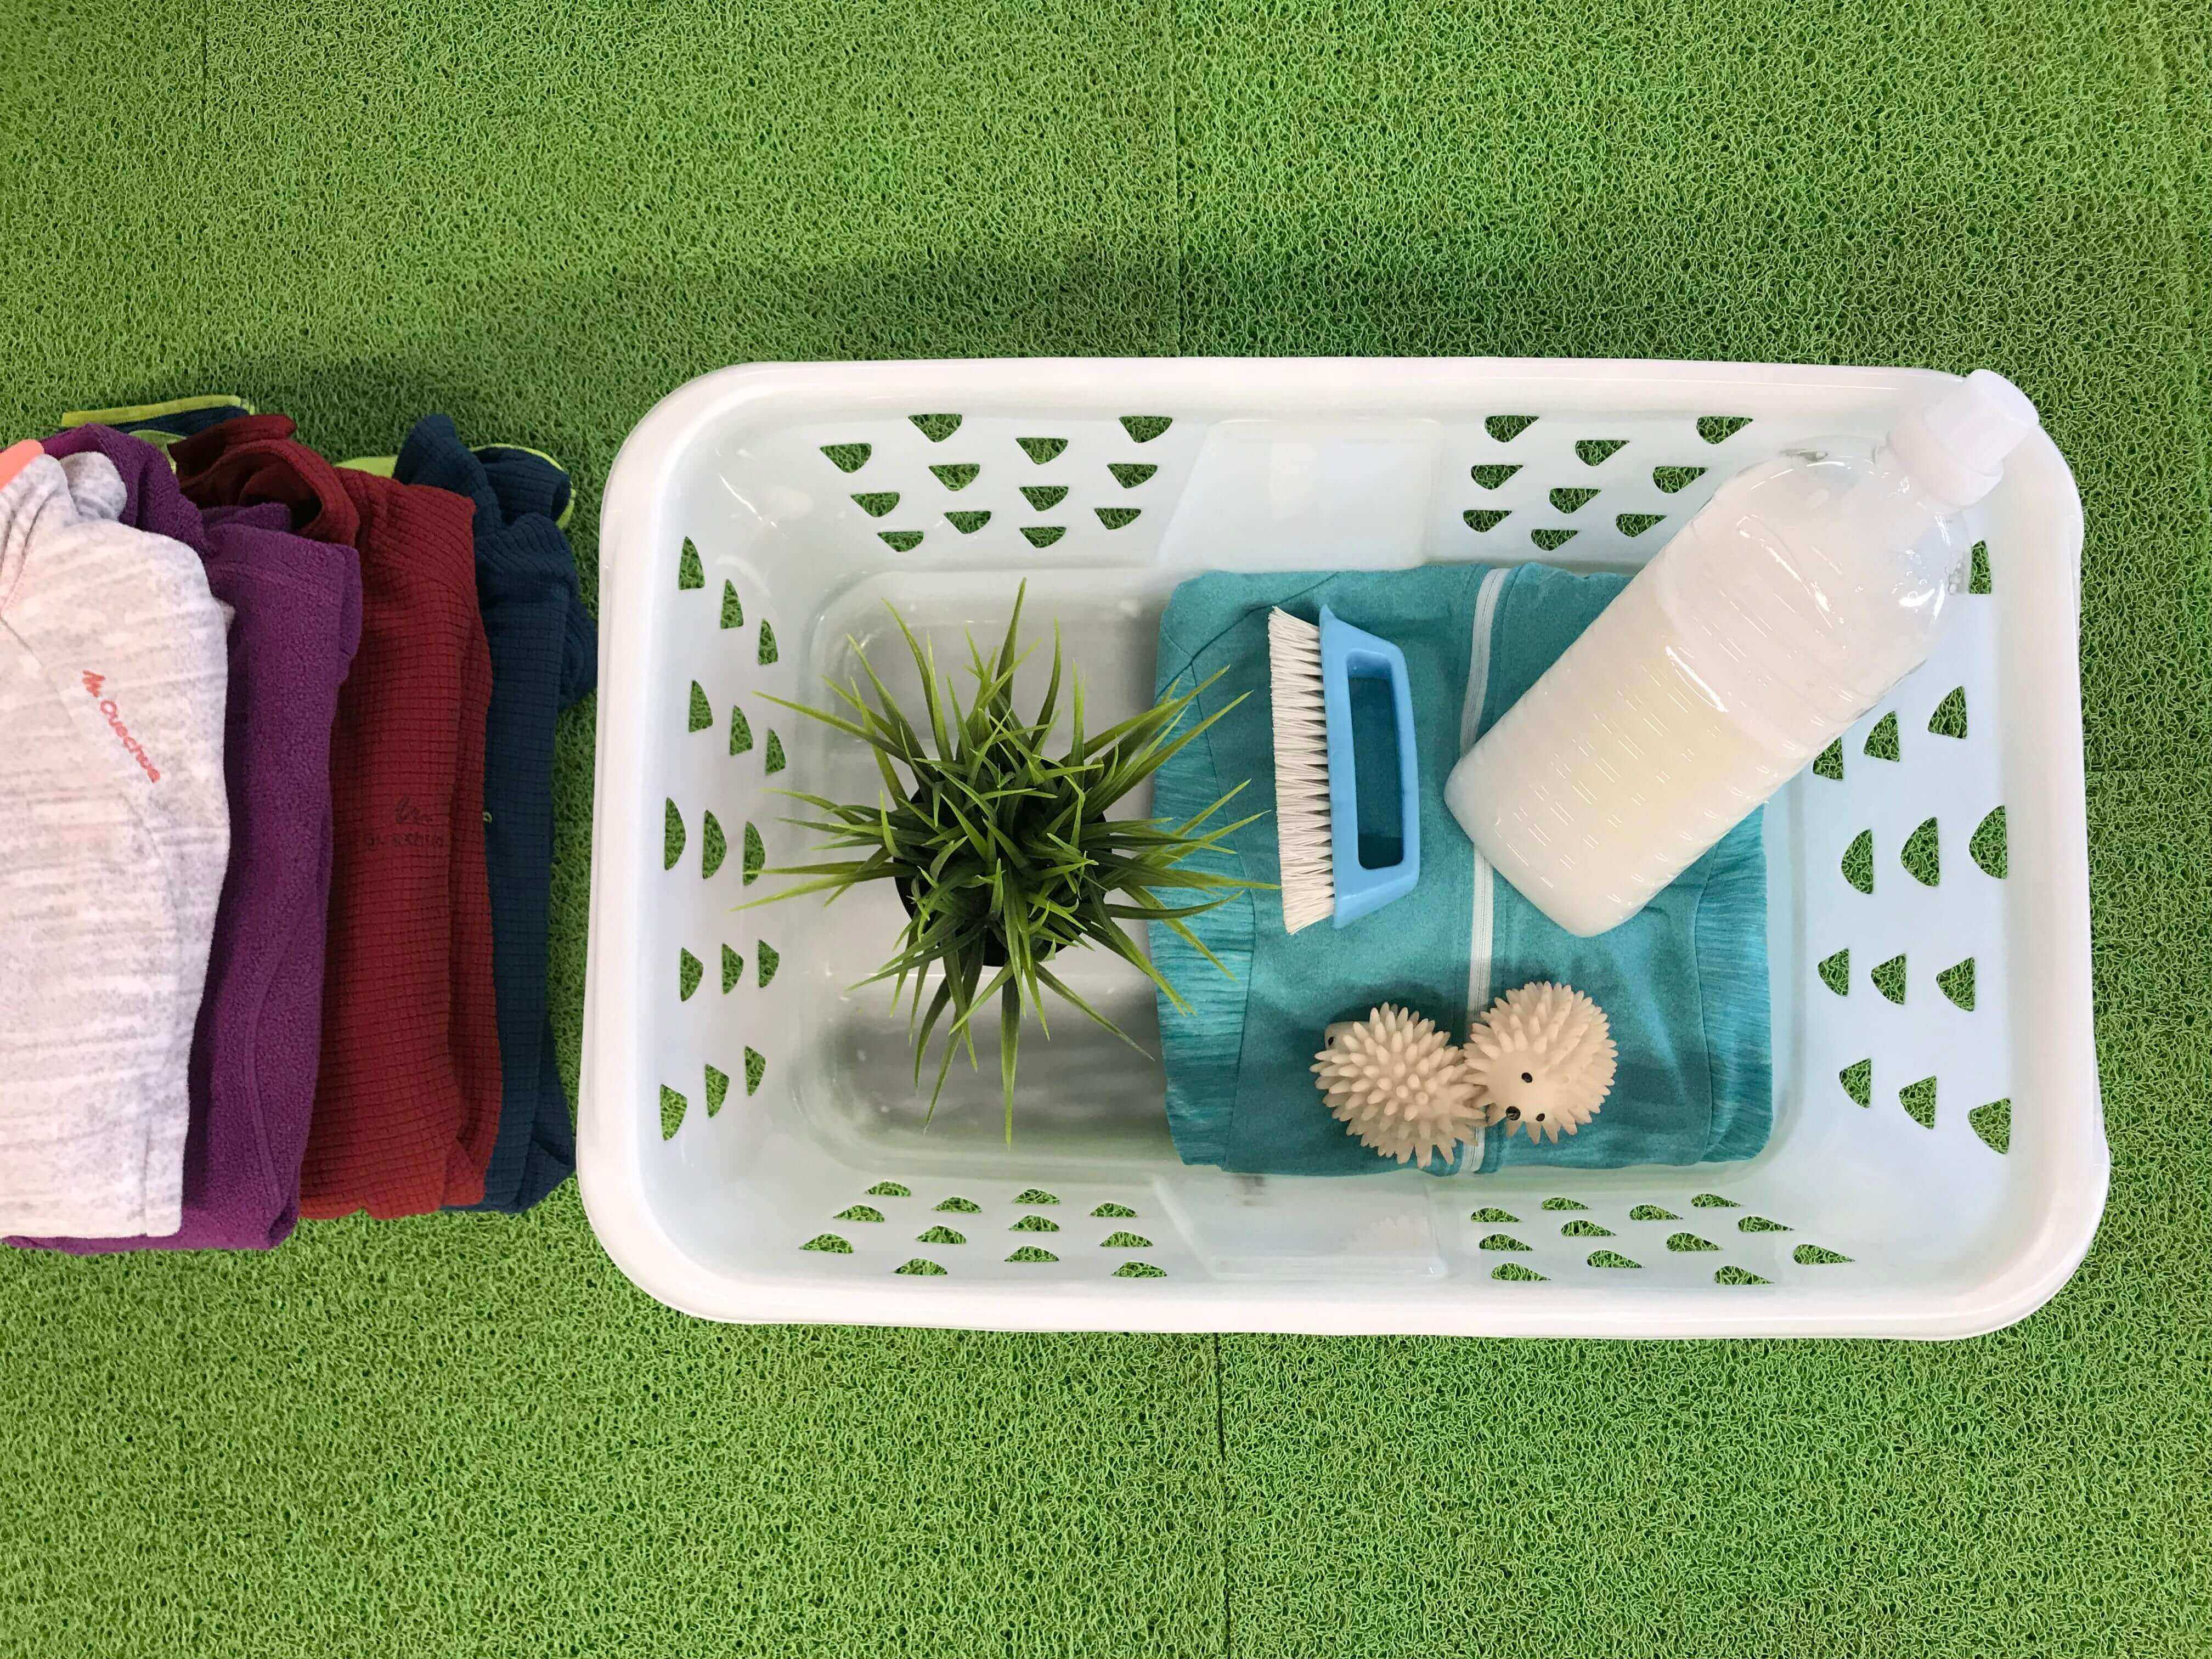 How Do You Wash YourHiking Clothesin a More Eco-Friendly Way